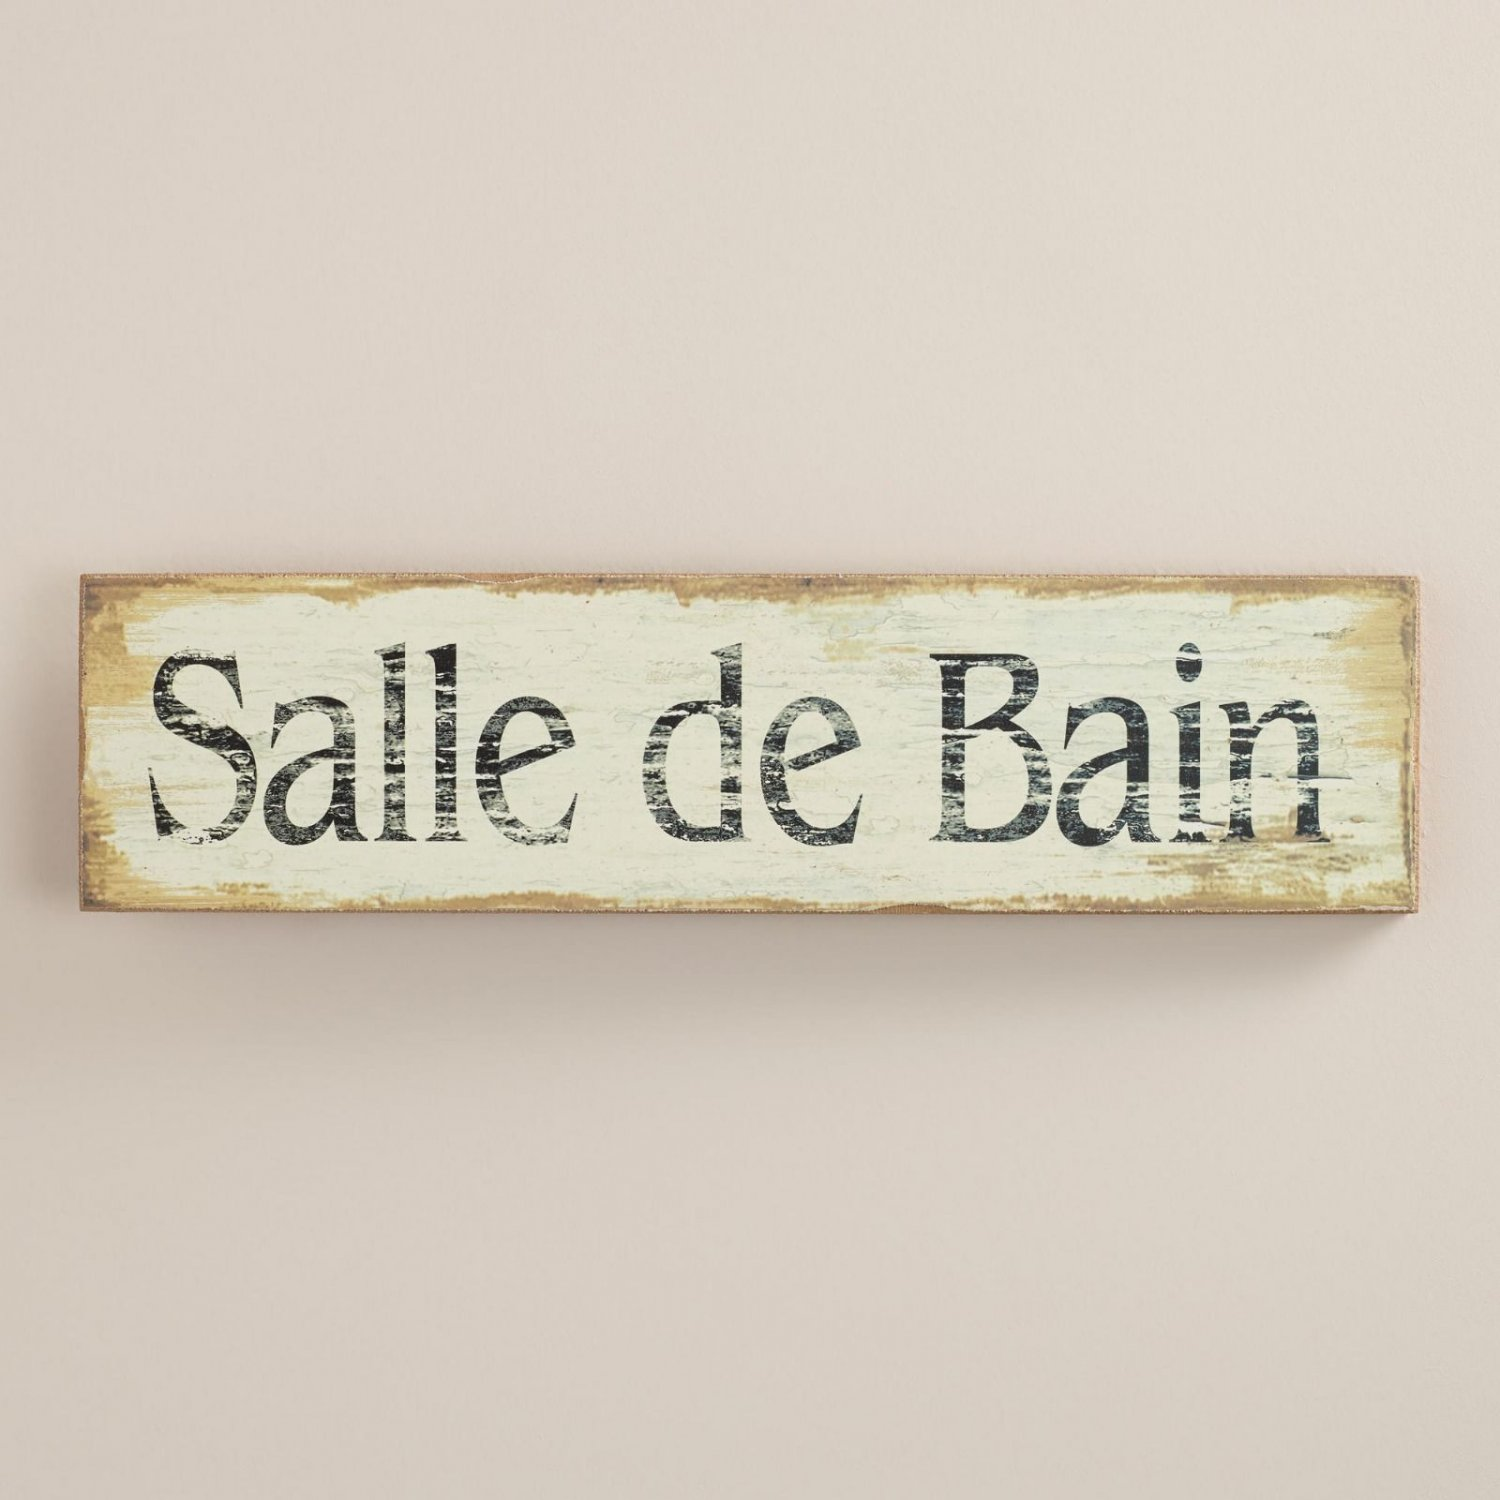 Salle de bain french paris european bathroom sign restroom for Salle de bain door sign